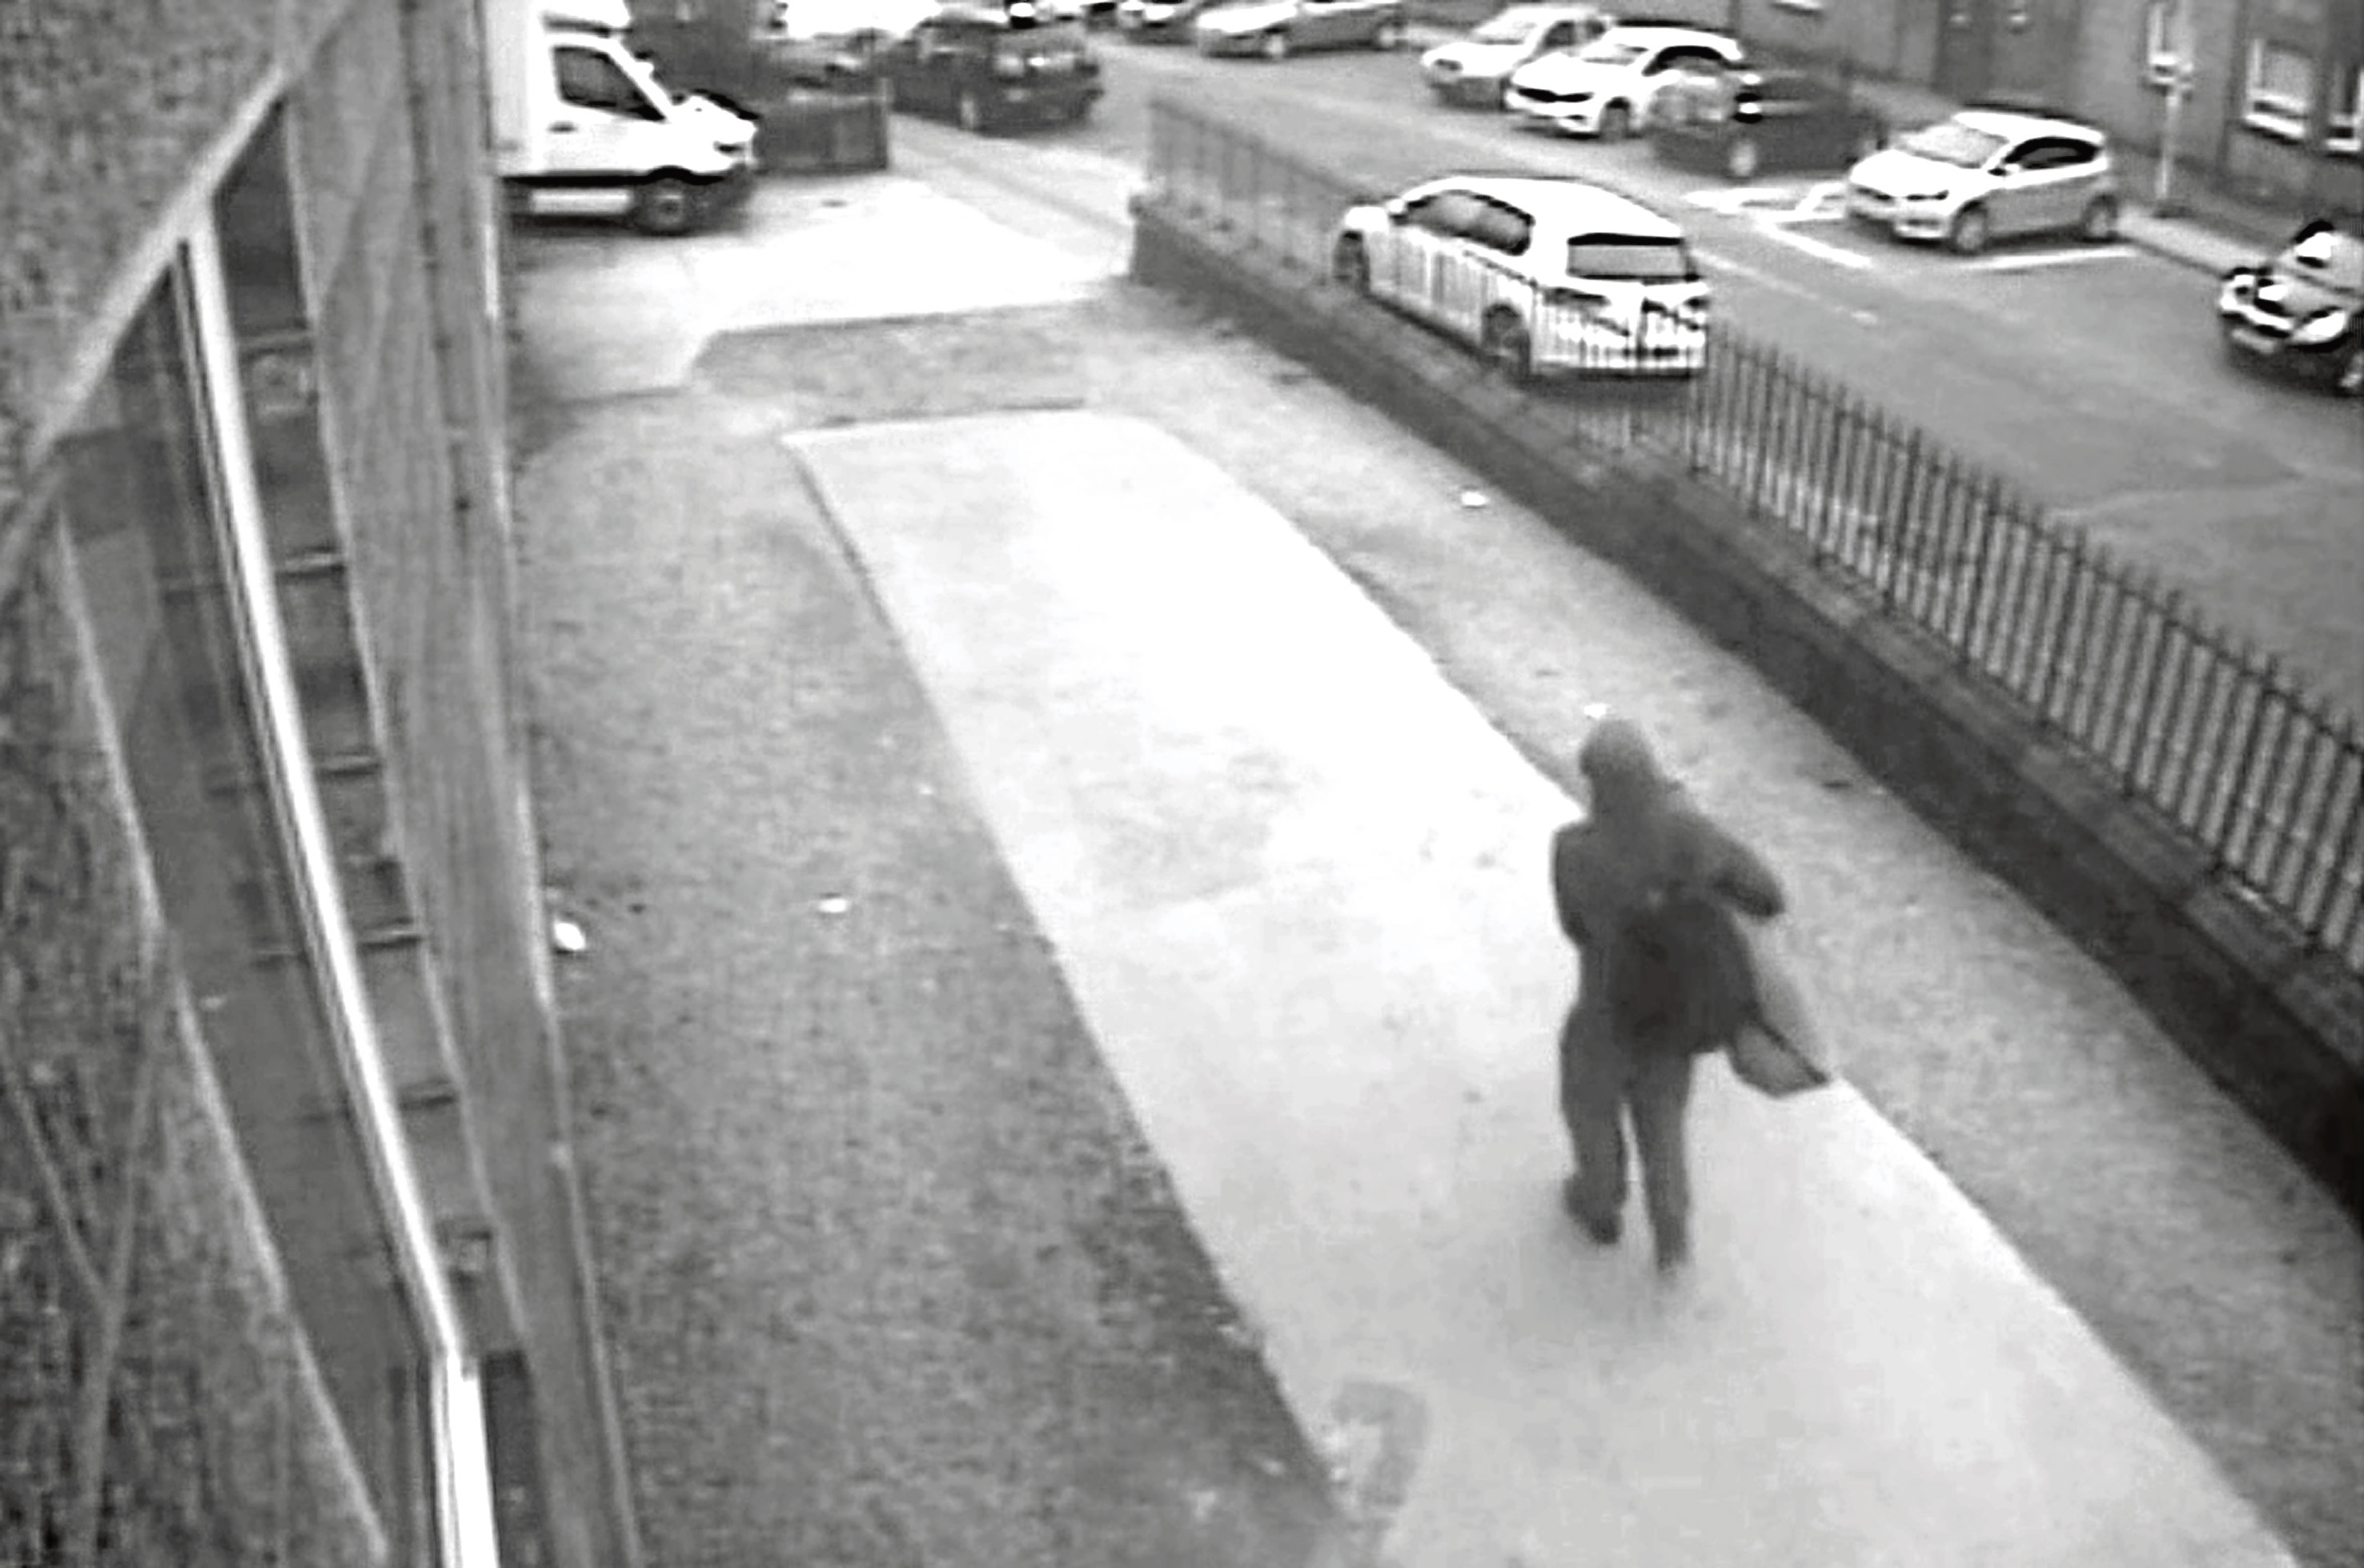 A CCTV image shows a man carrying a large holdall around the time of the theft.